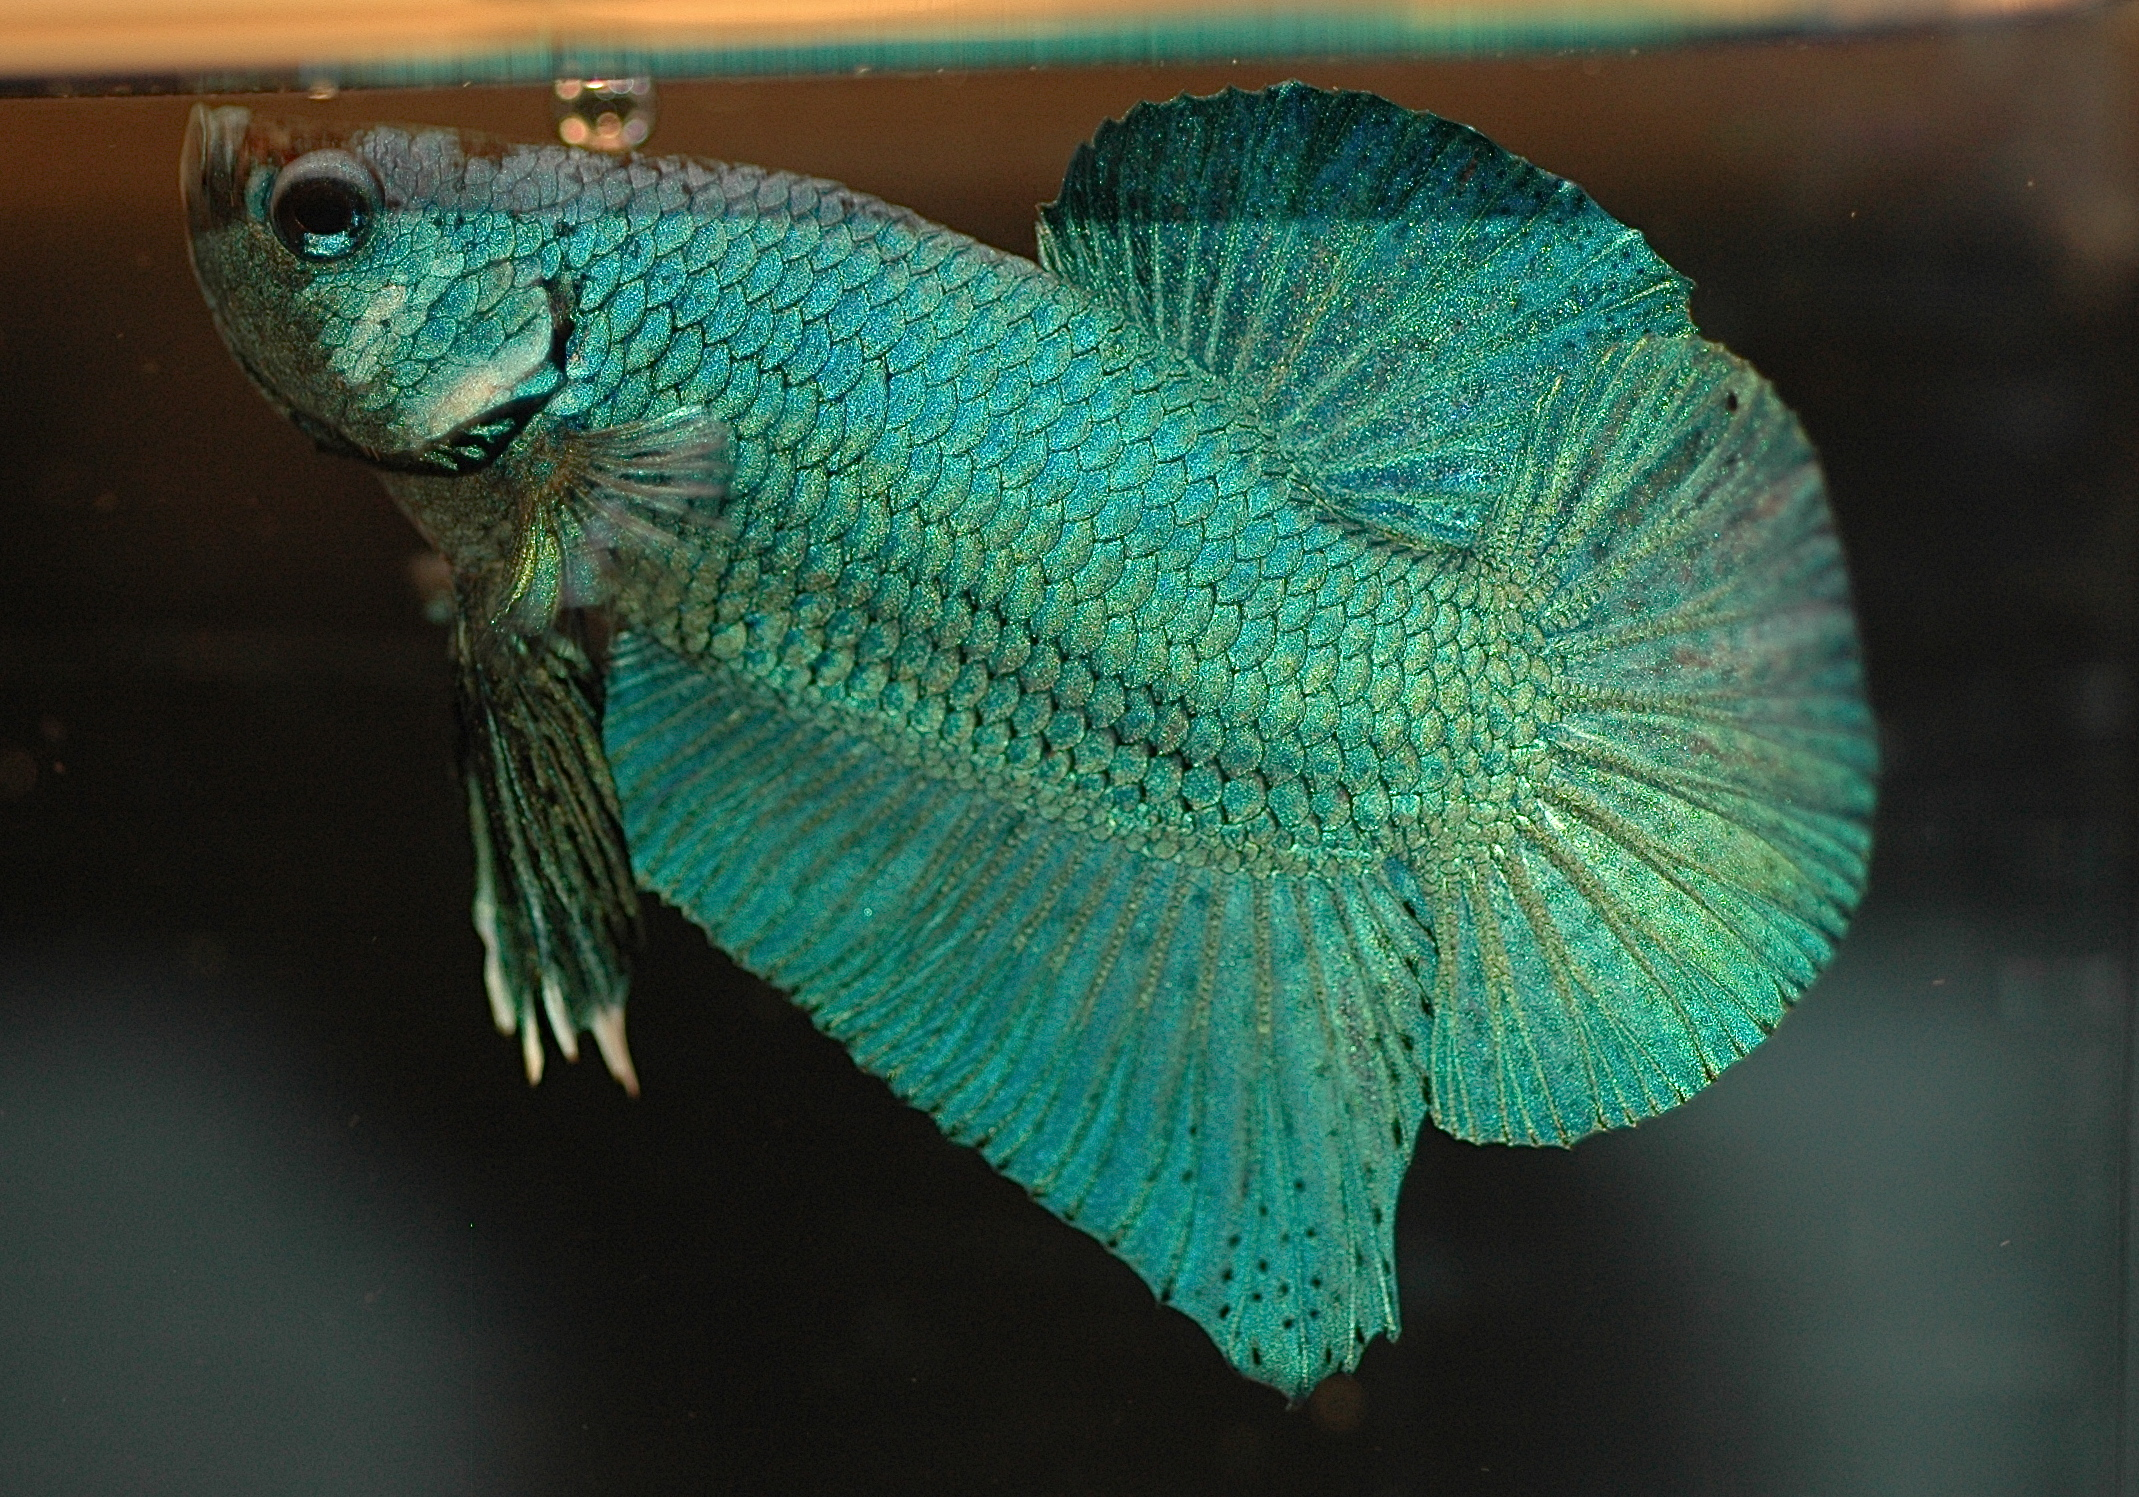 Green and blue betta fish